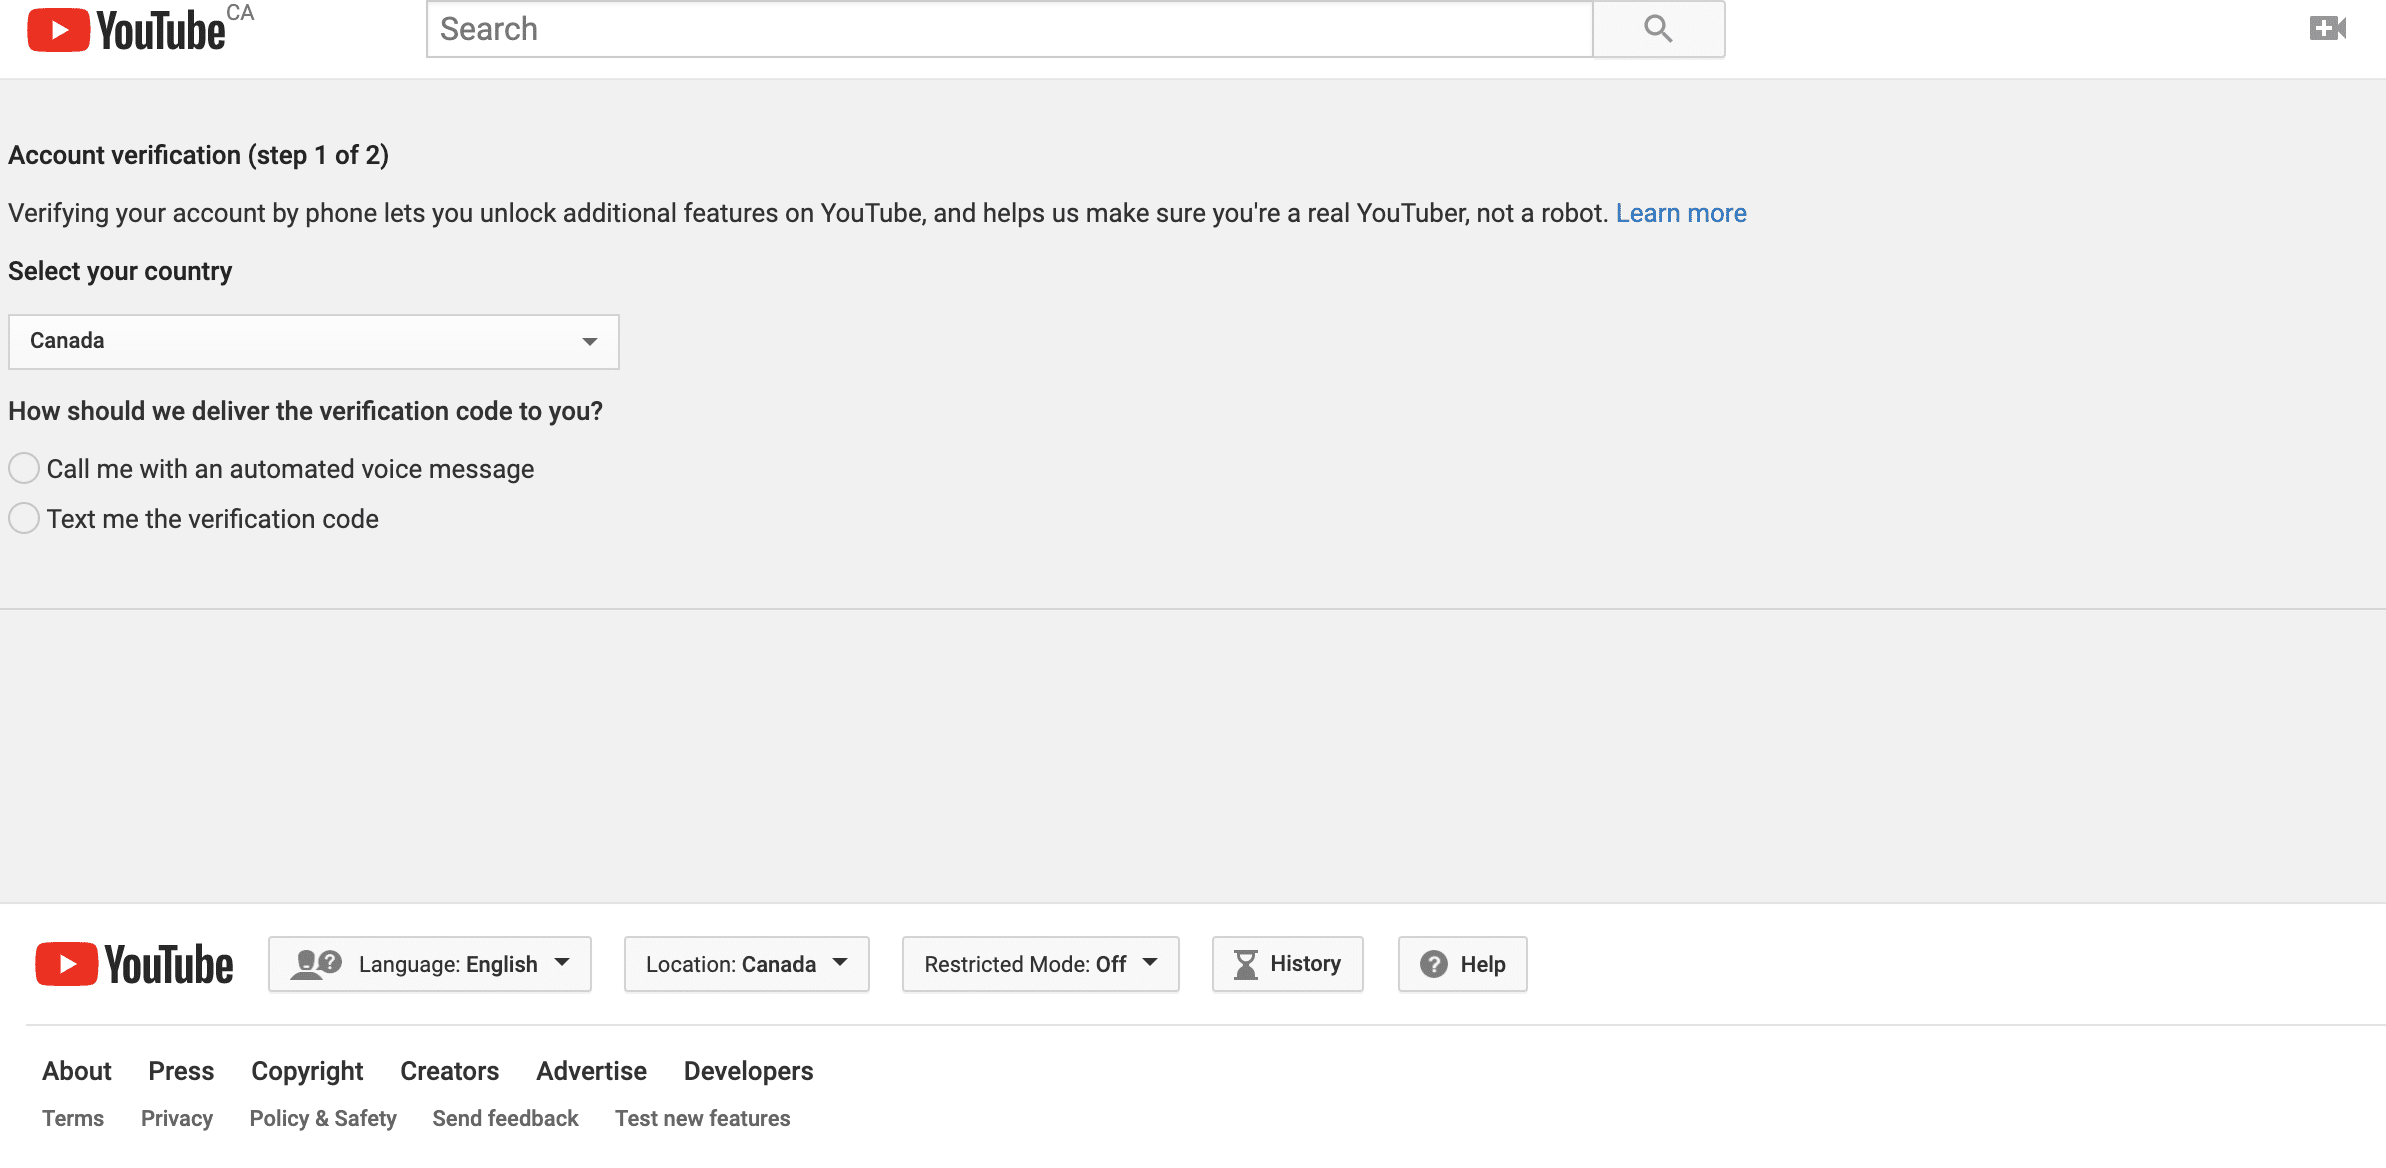 YouTube verification process step 1 of 2: Select your country